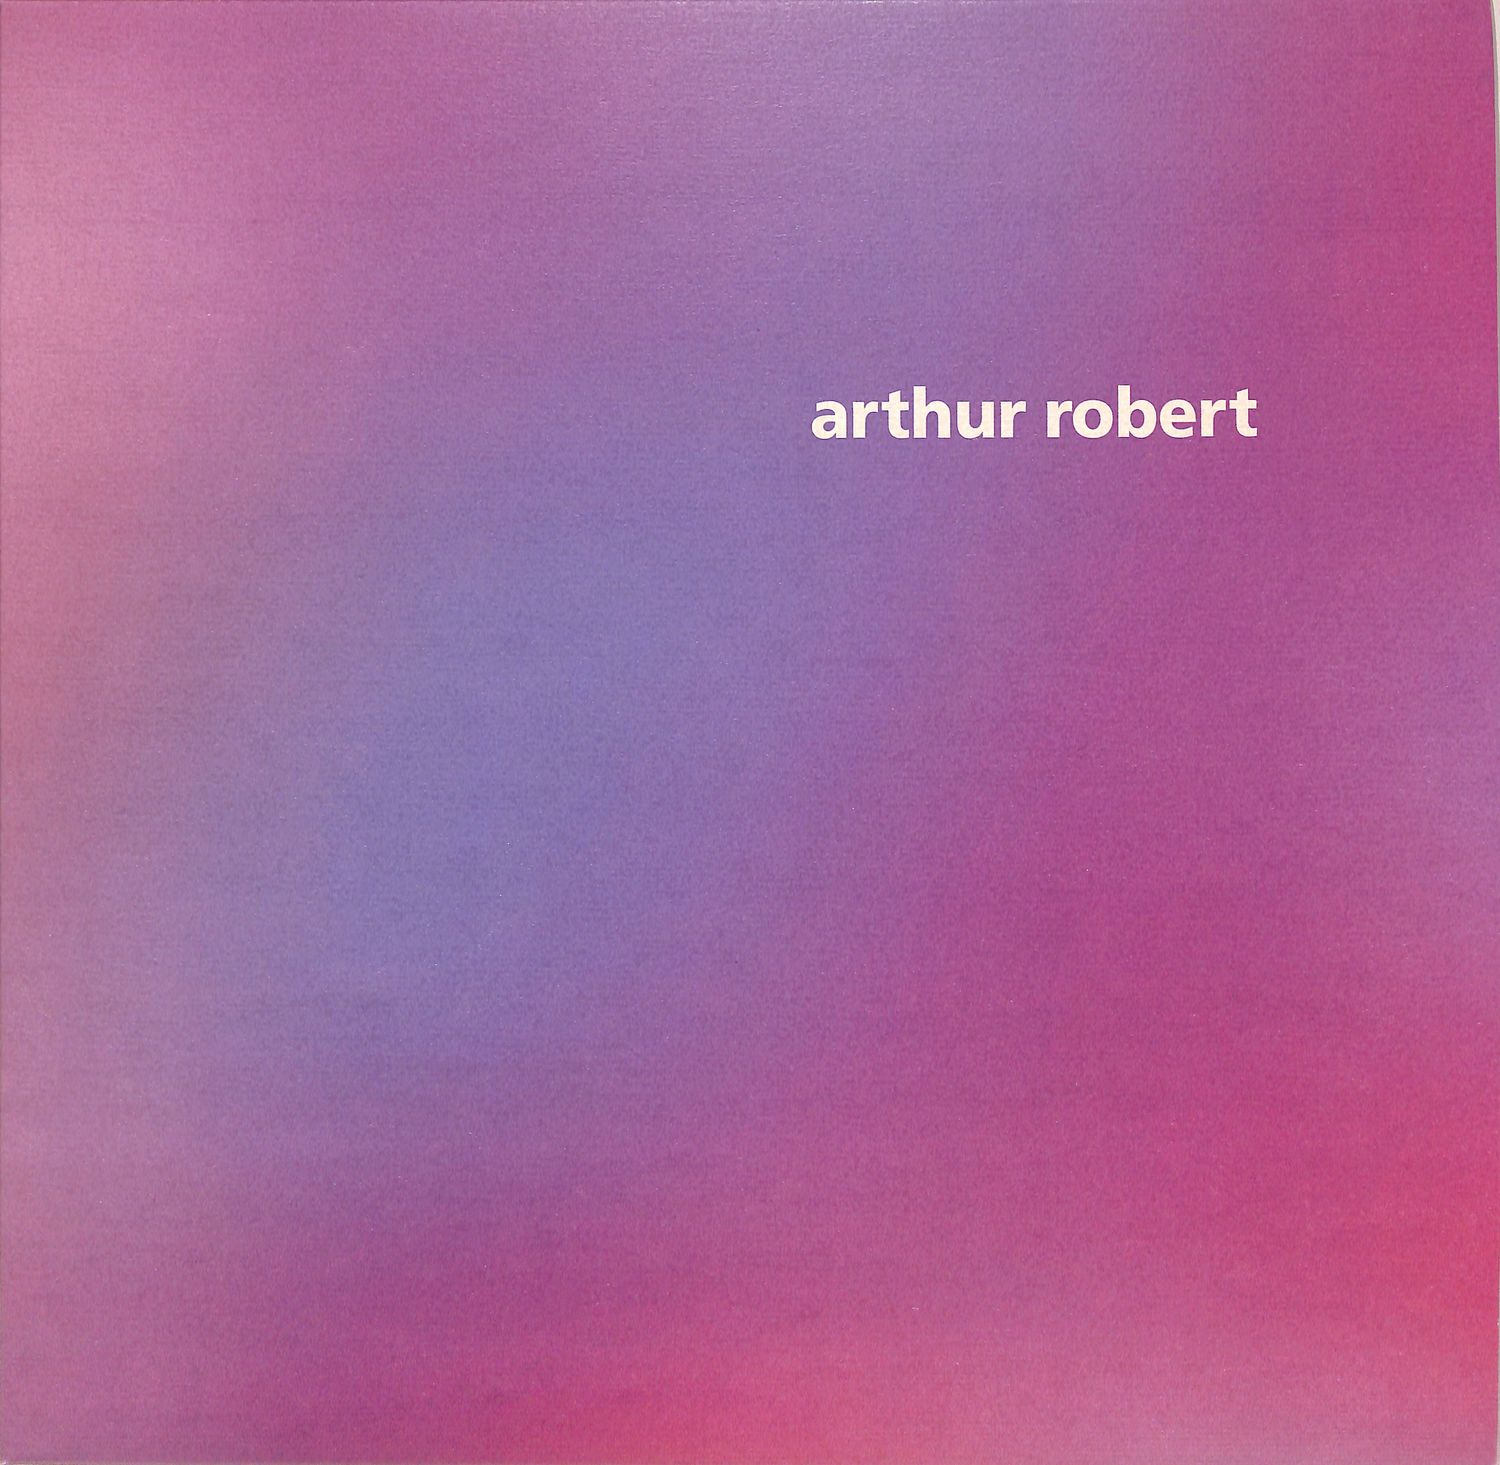 Arthur Robert - ARRIVAL PART 1